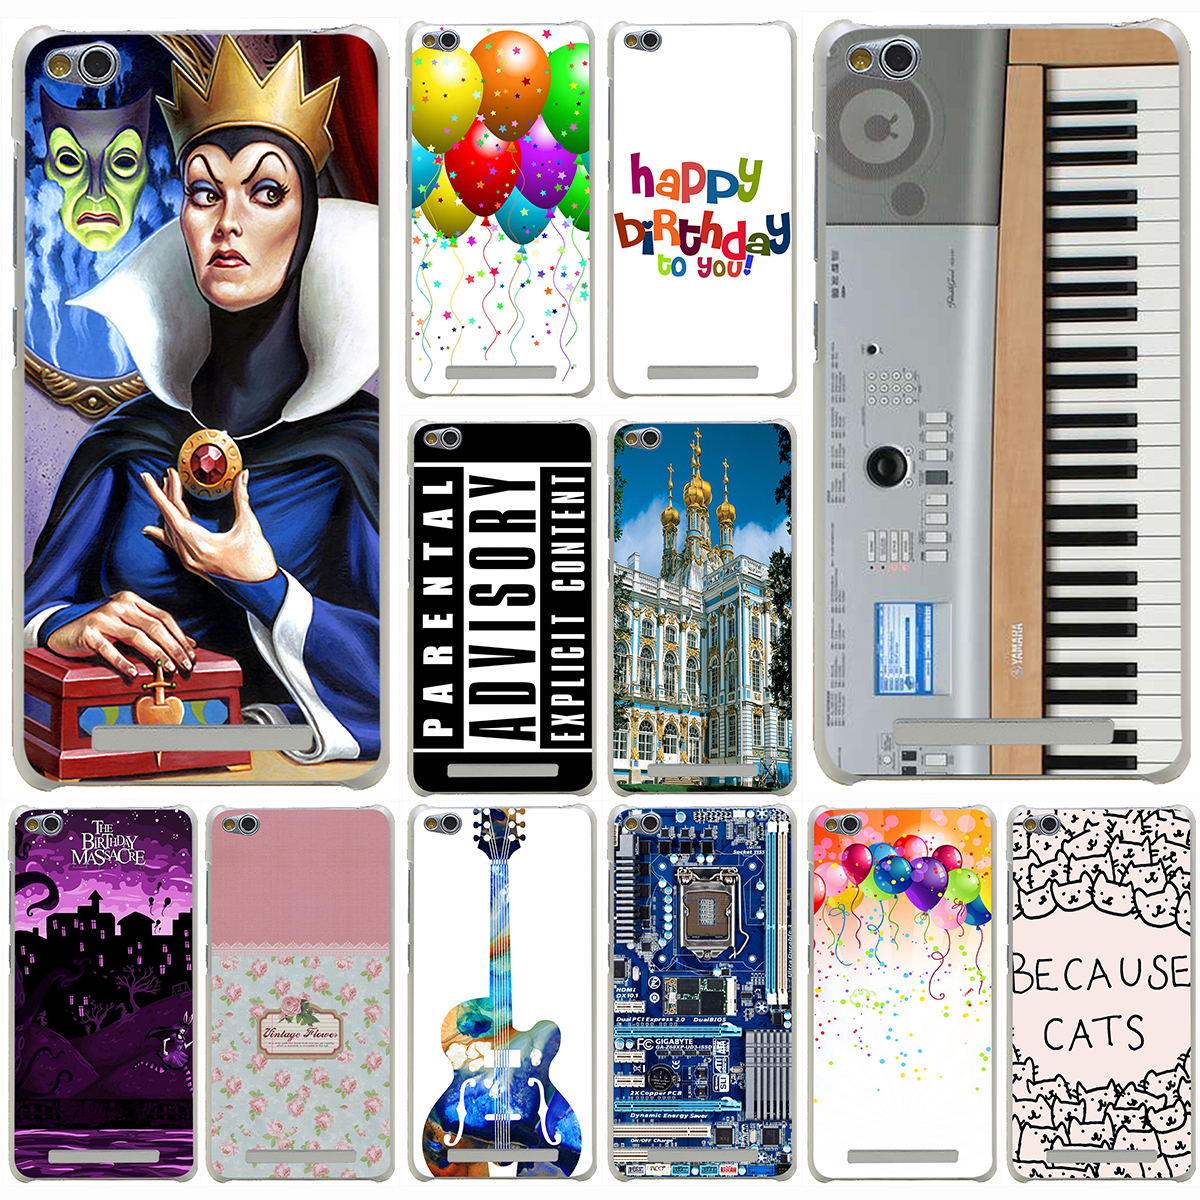 Keyboard Digital Piano Vintage floral love is the flower Hard Case for Redmi 2 2A 3s Pro Note 2 3 Pro & Meizu M2 Mini M2 M3 Note